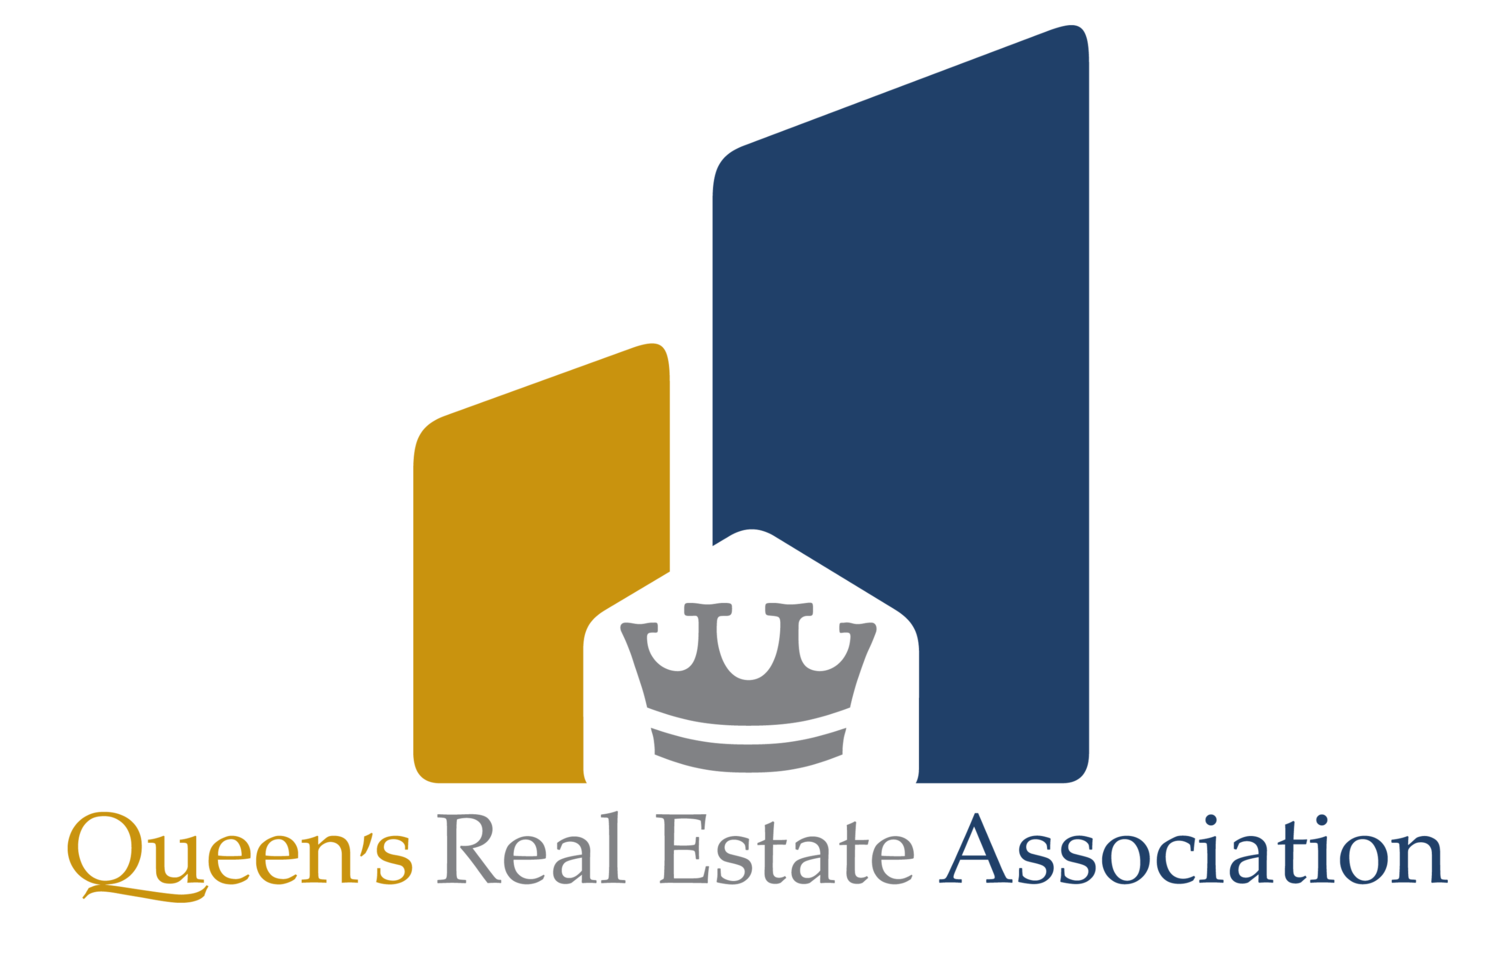 Queen's Real Estate Association